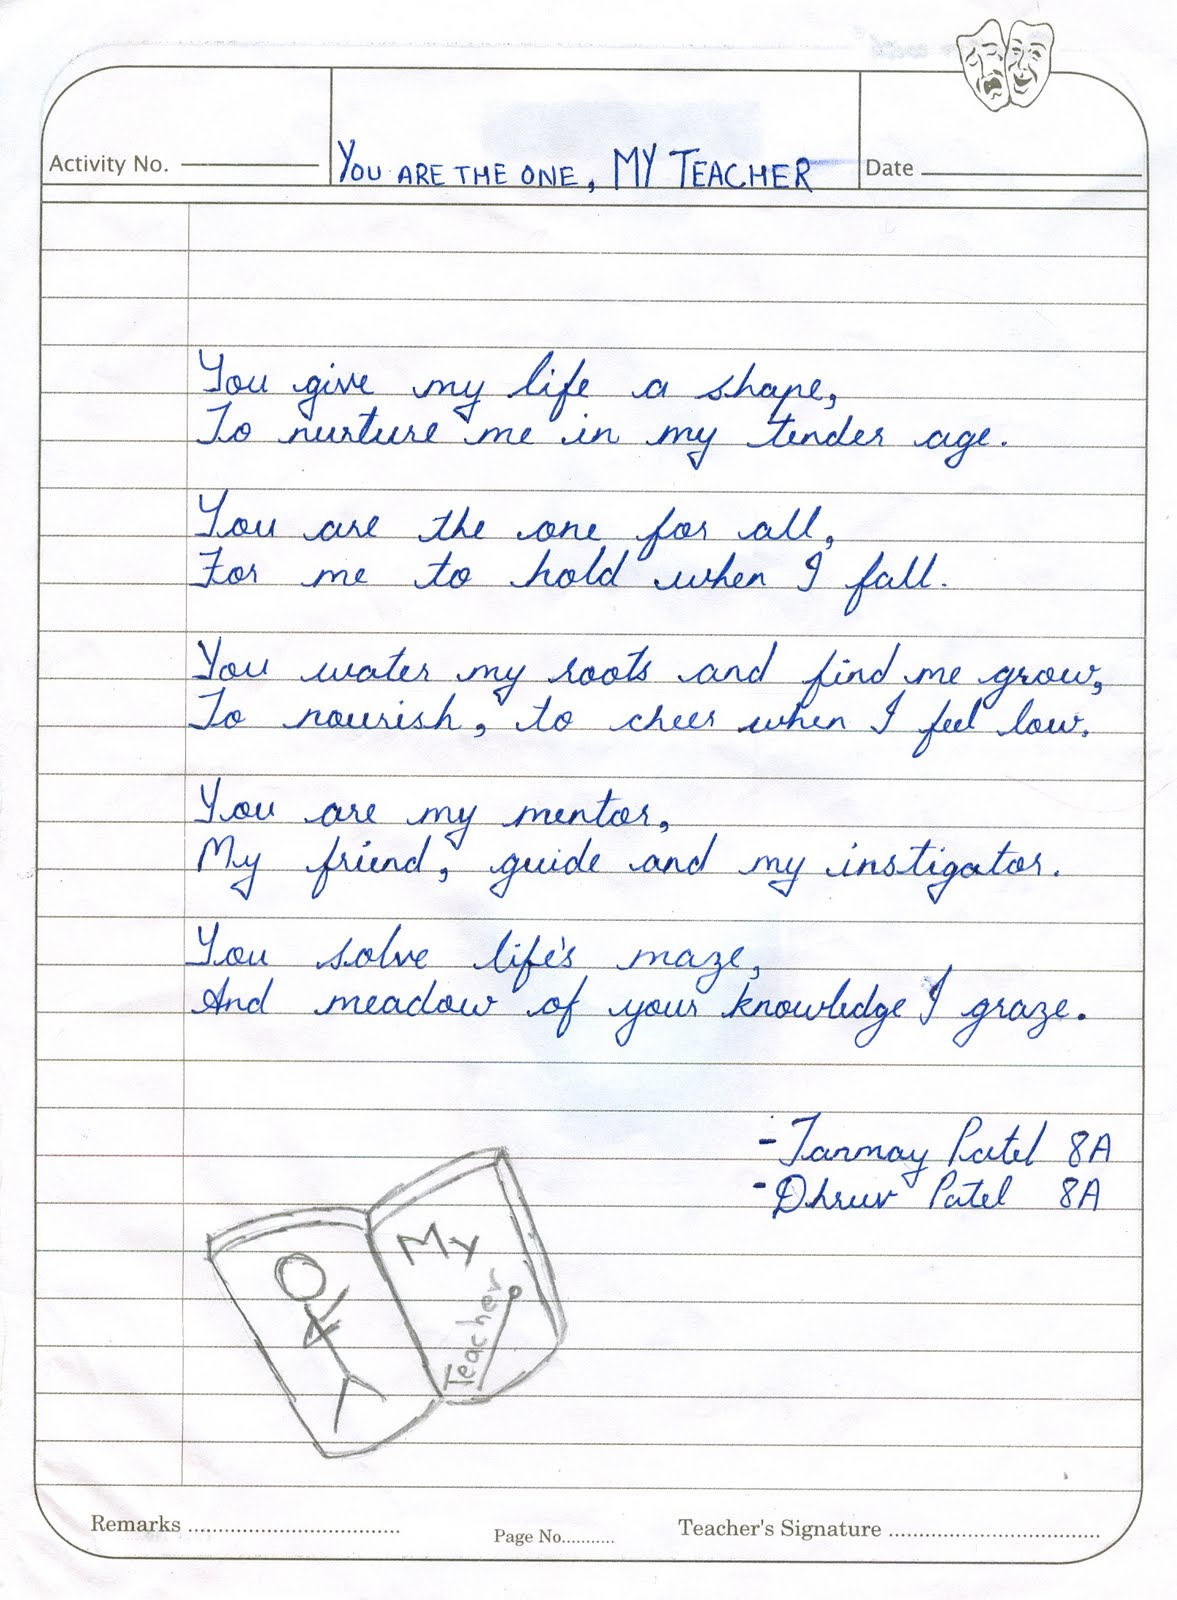 Teacher and Student: Poems by Class 8 Students - Atmiya